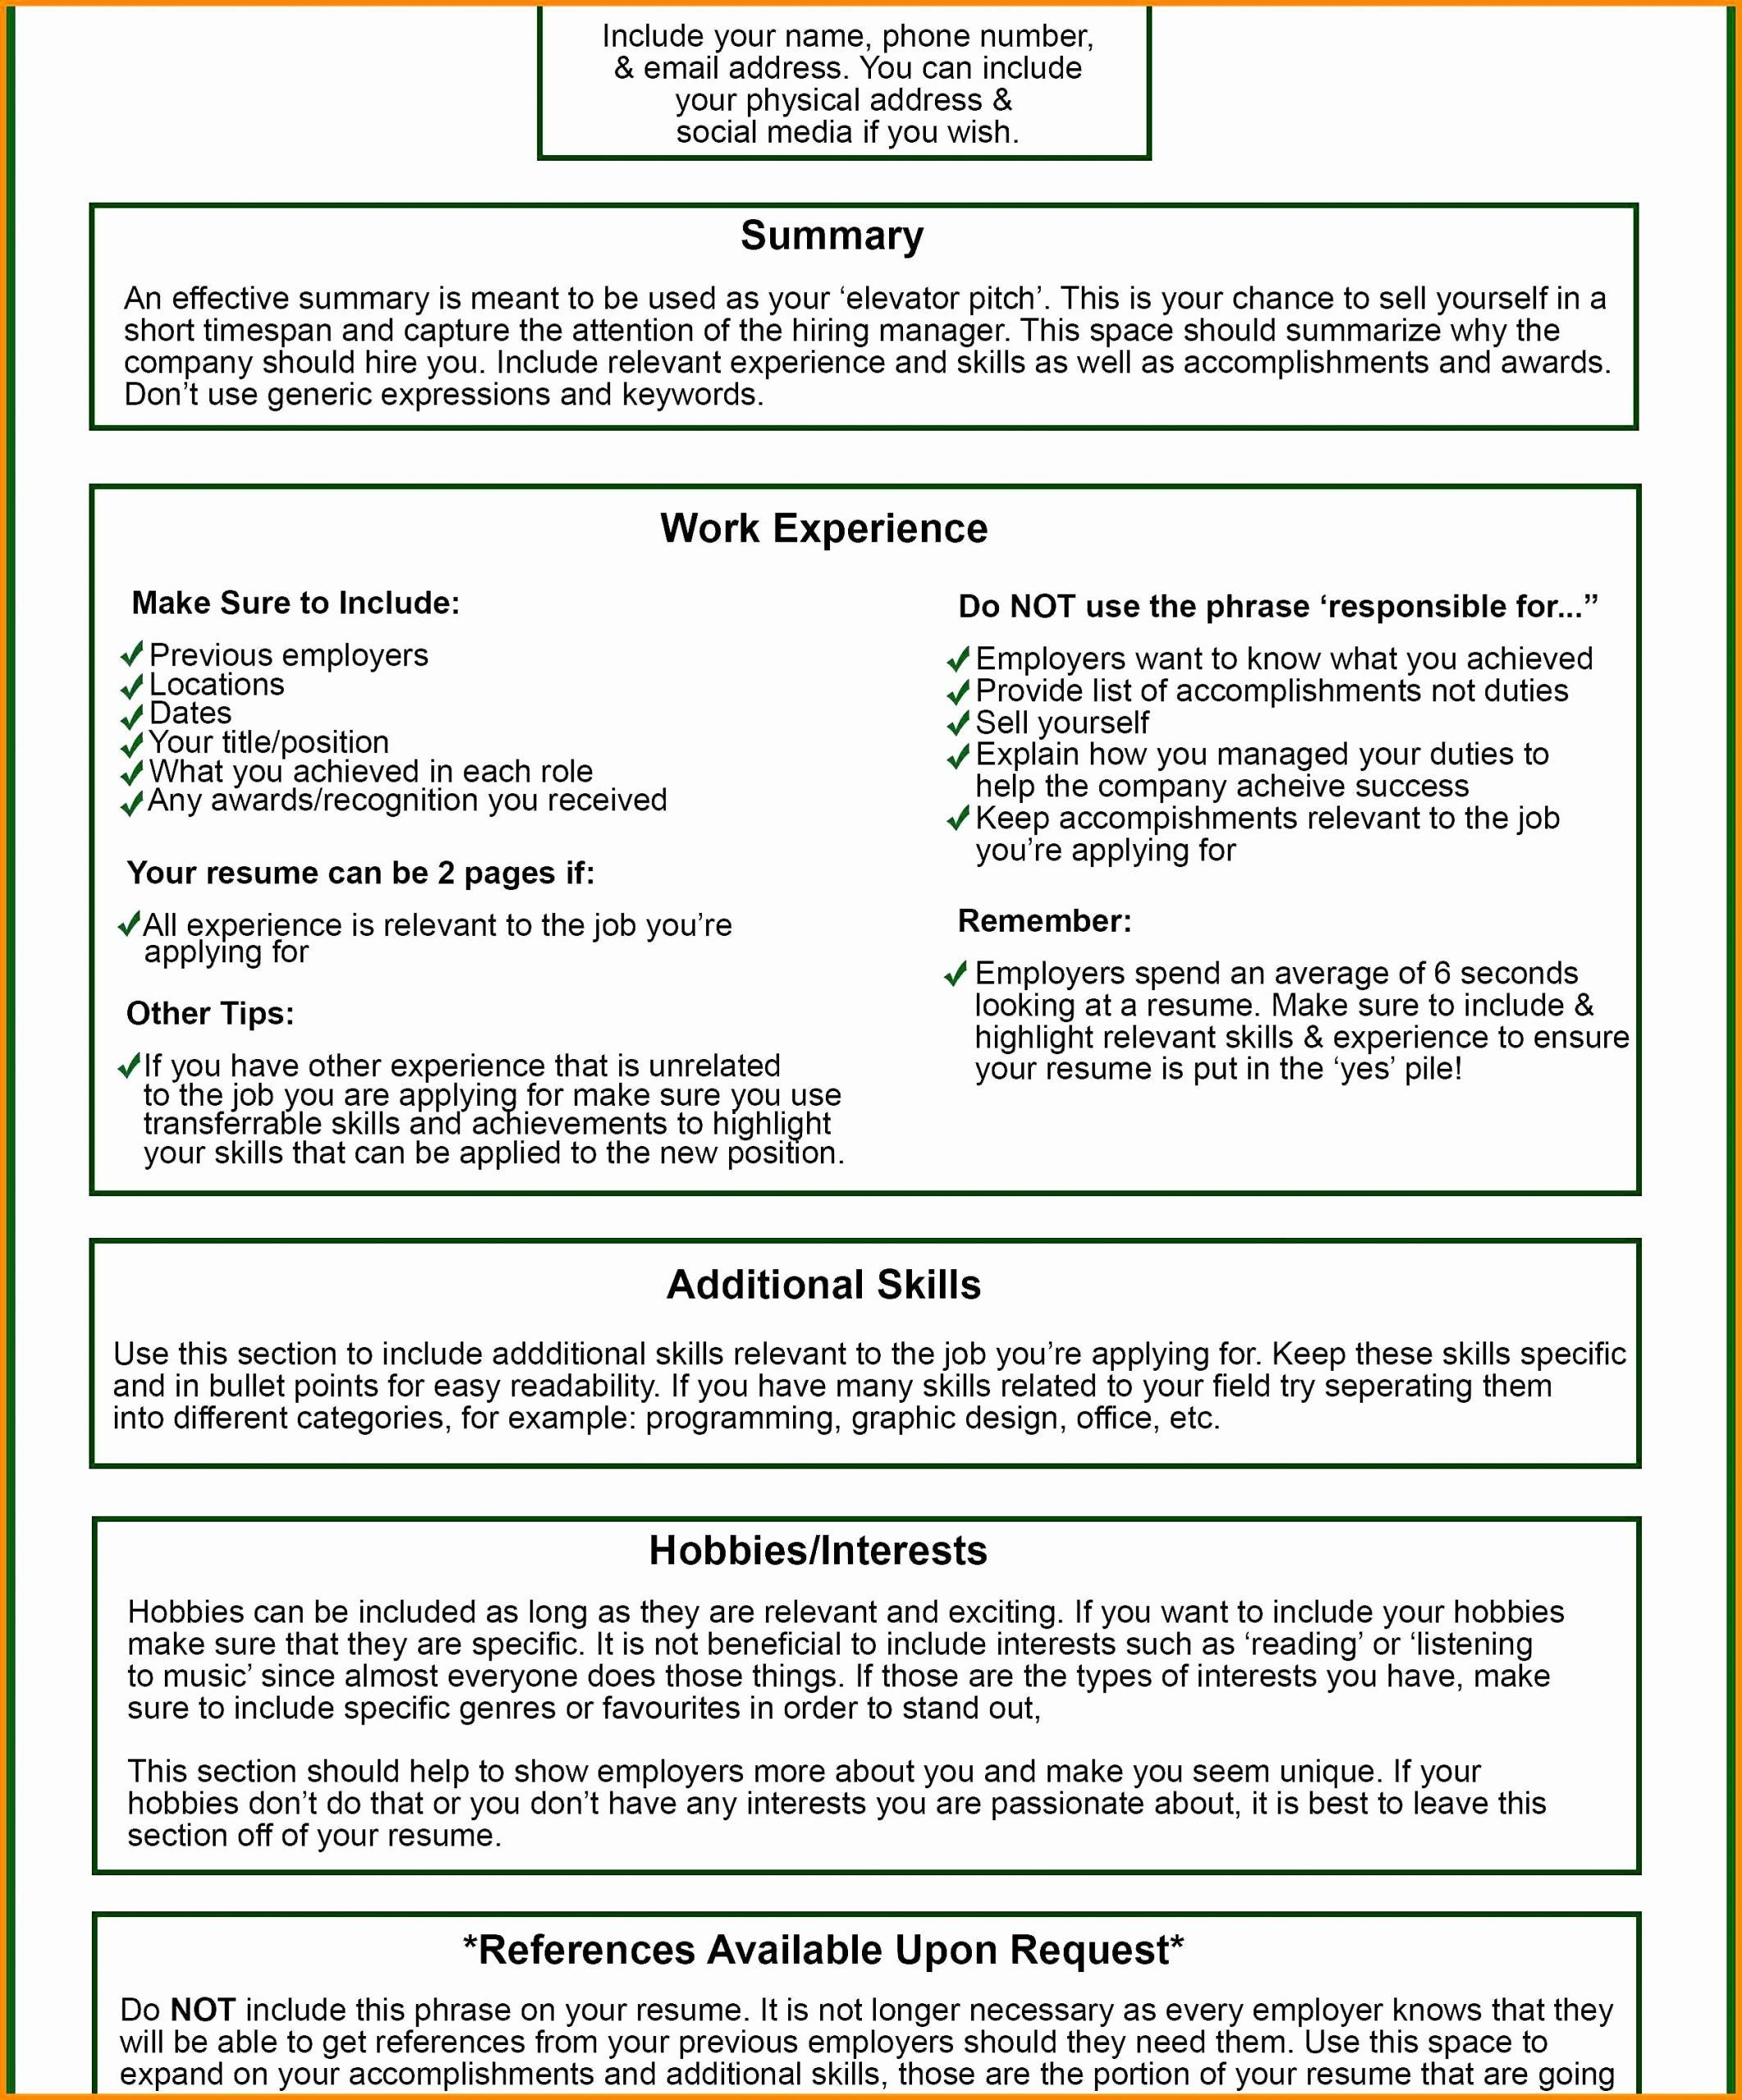 template for letter of interest luxury resumes hobbies and interests examples cv cover Resume Good Hobbies For Resume